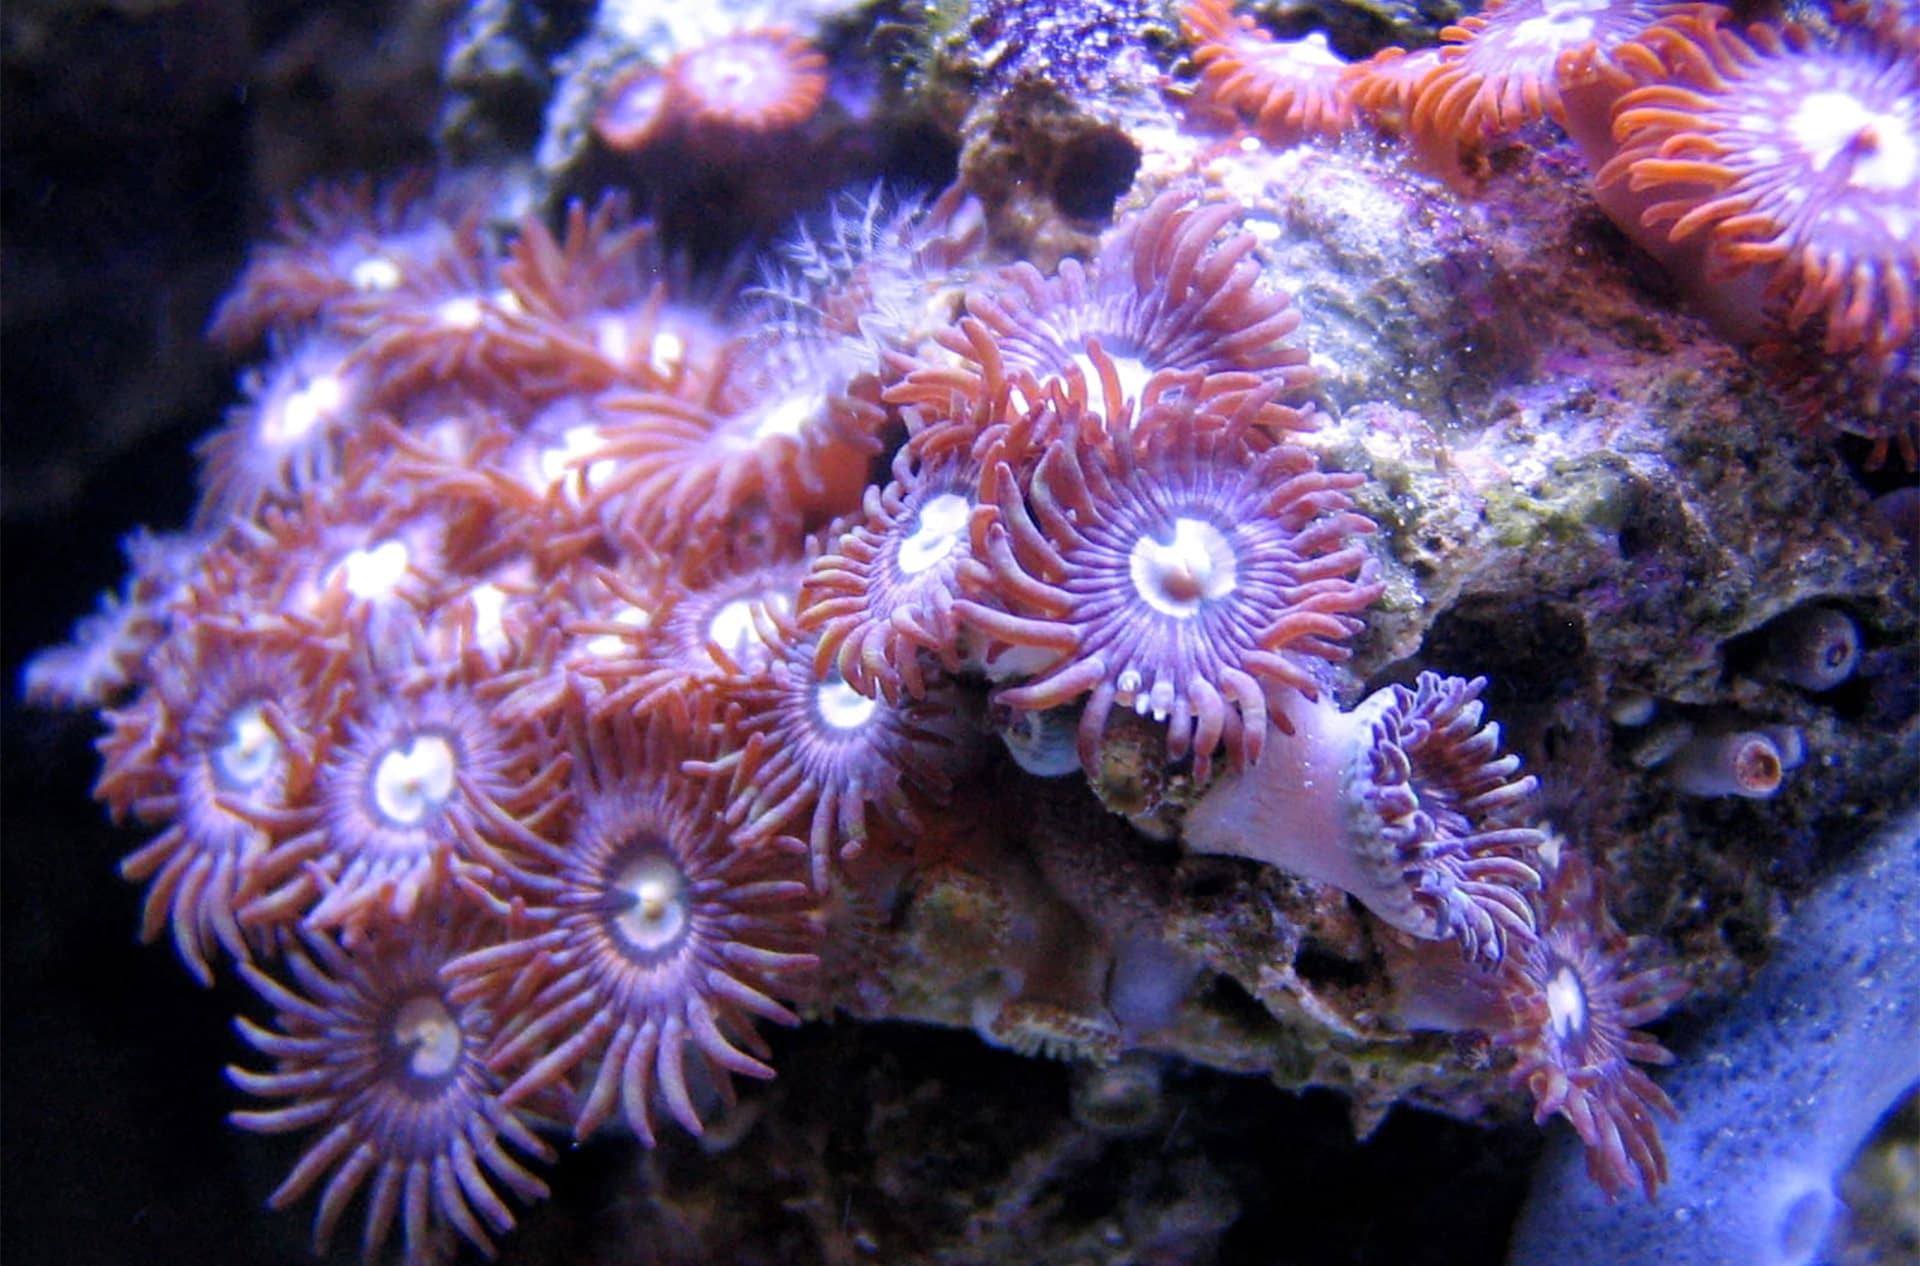 Curaçao Sea Aquarium is committed to allow species of soft corals to be grown healthy and strong in their care.